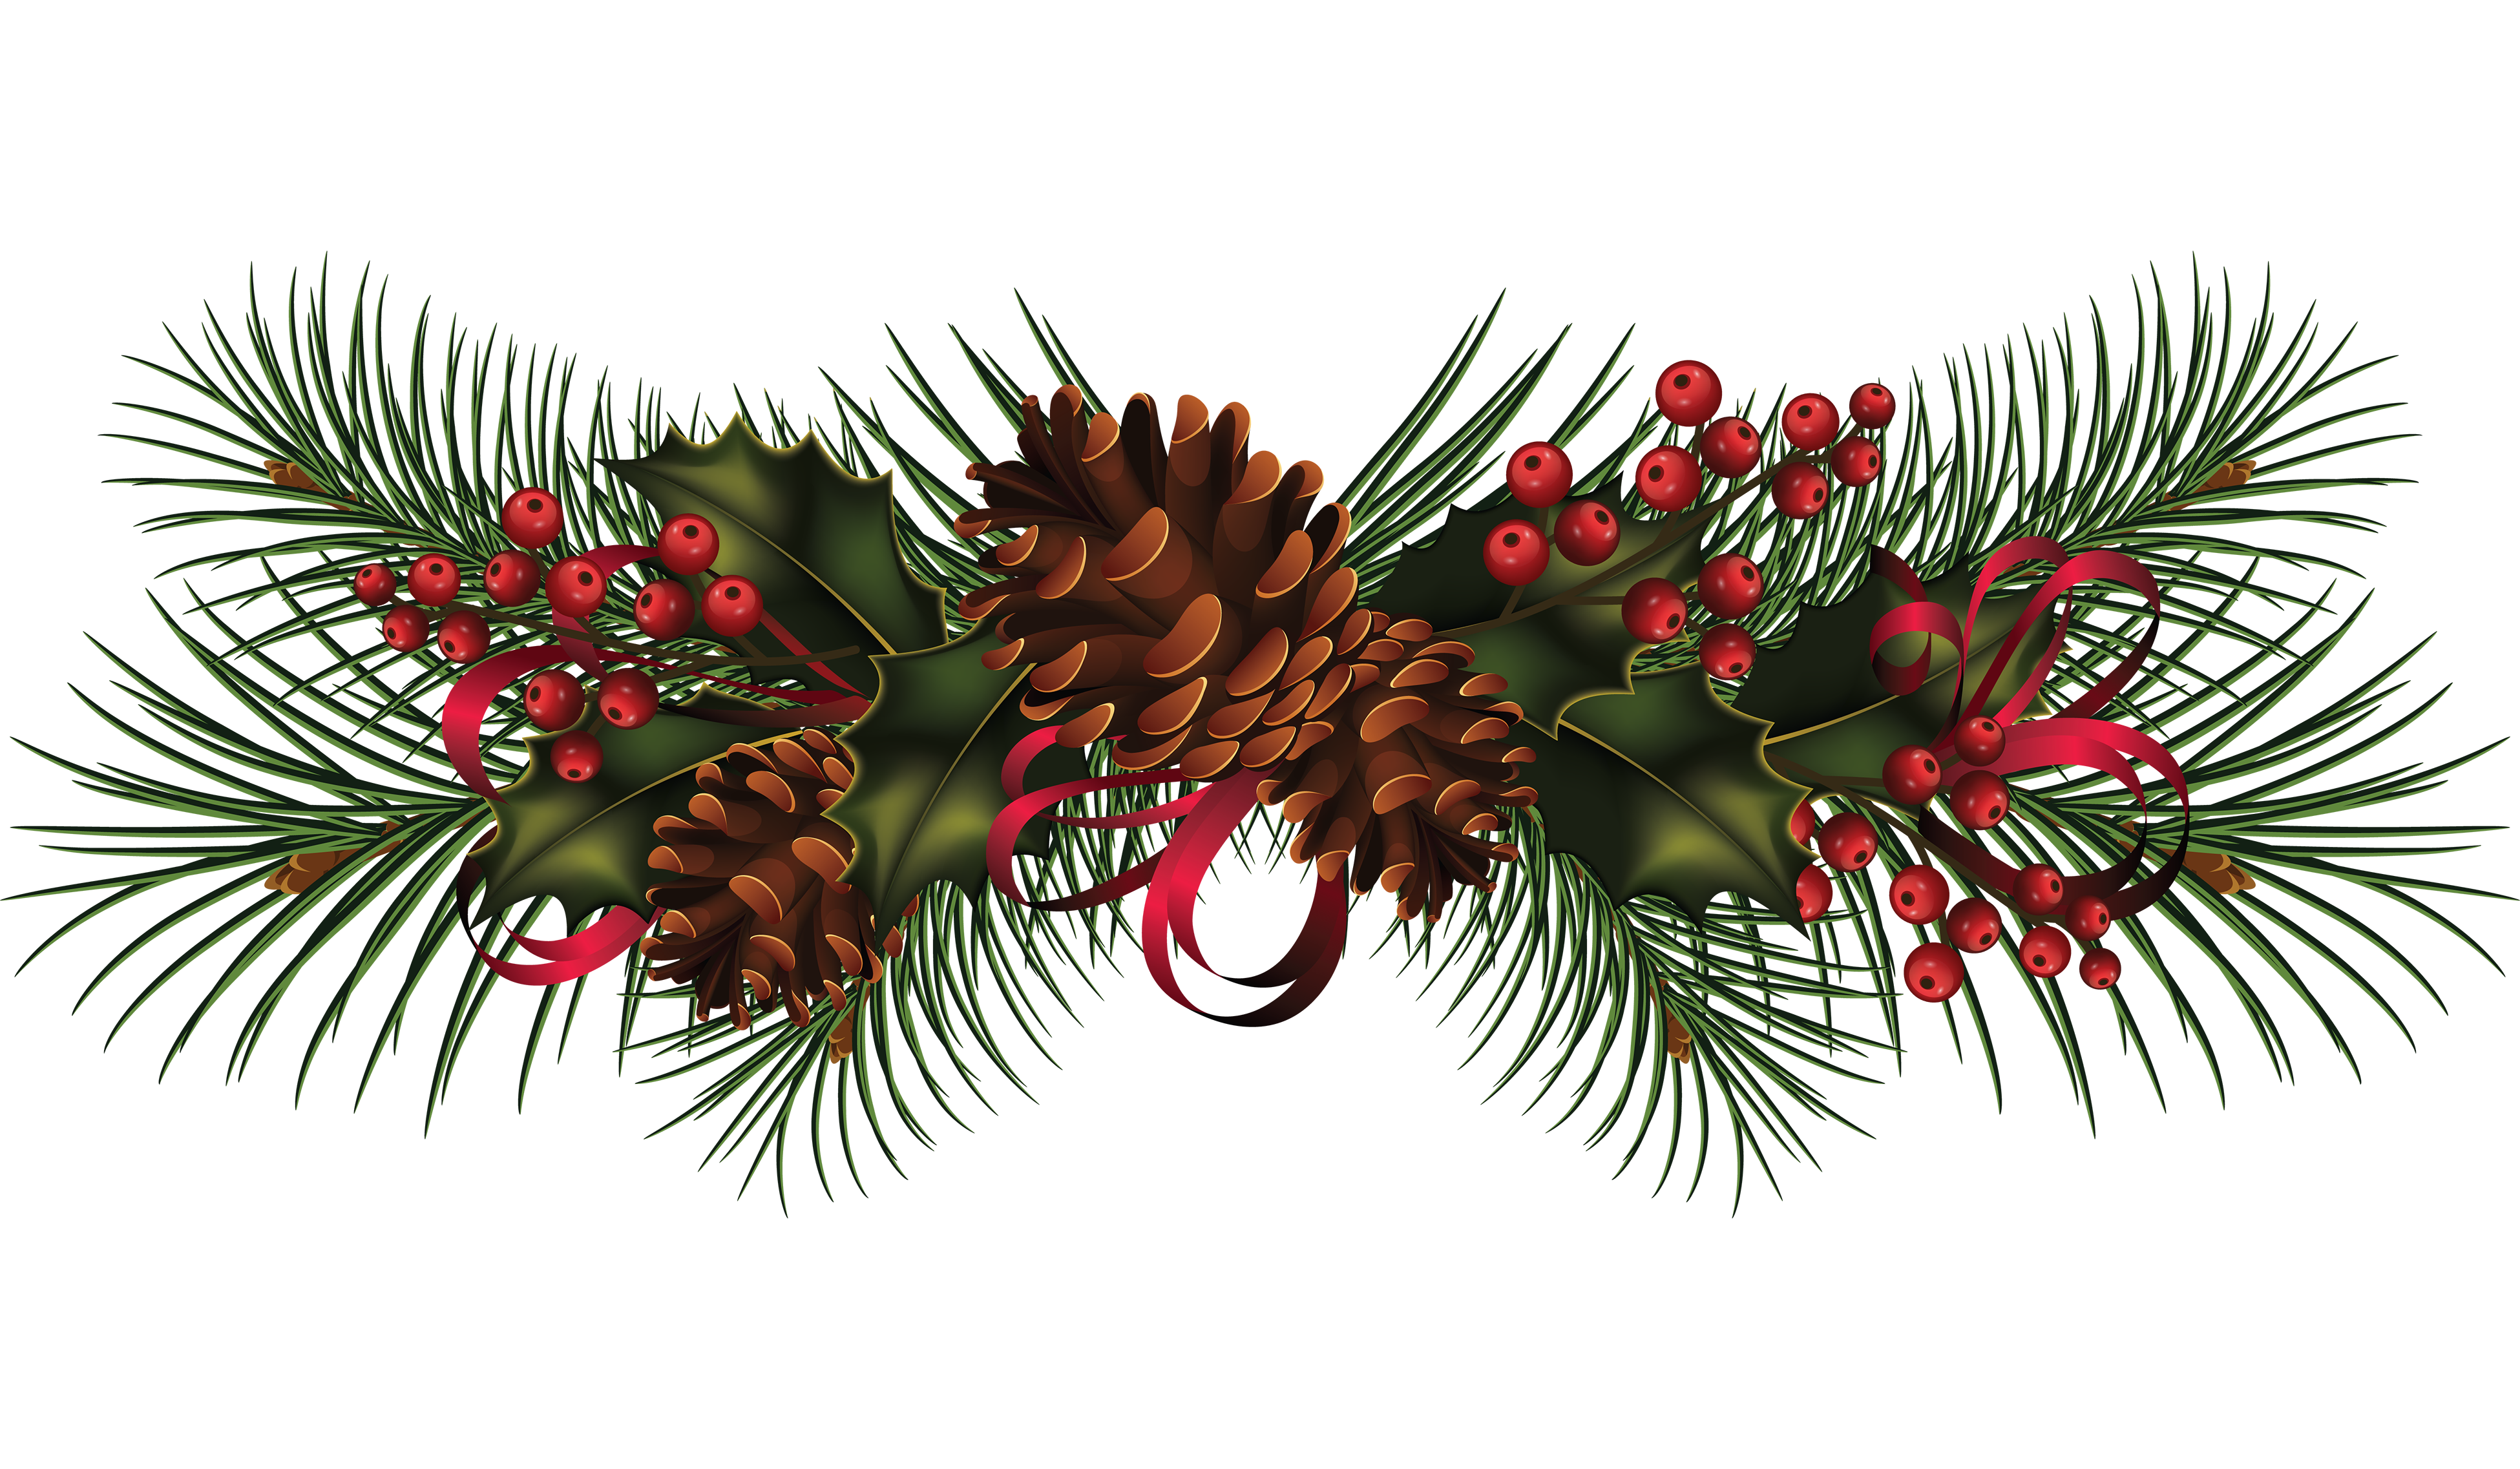 Red pine tree clipart clipart royalty free stock Christmas Garland Wreath Clip art - Pine cone decoration image 3900 ... clipart royalty free stock